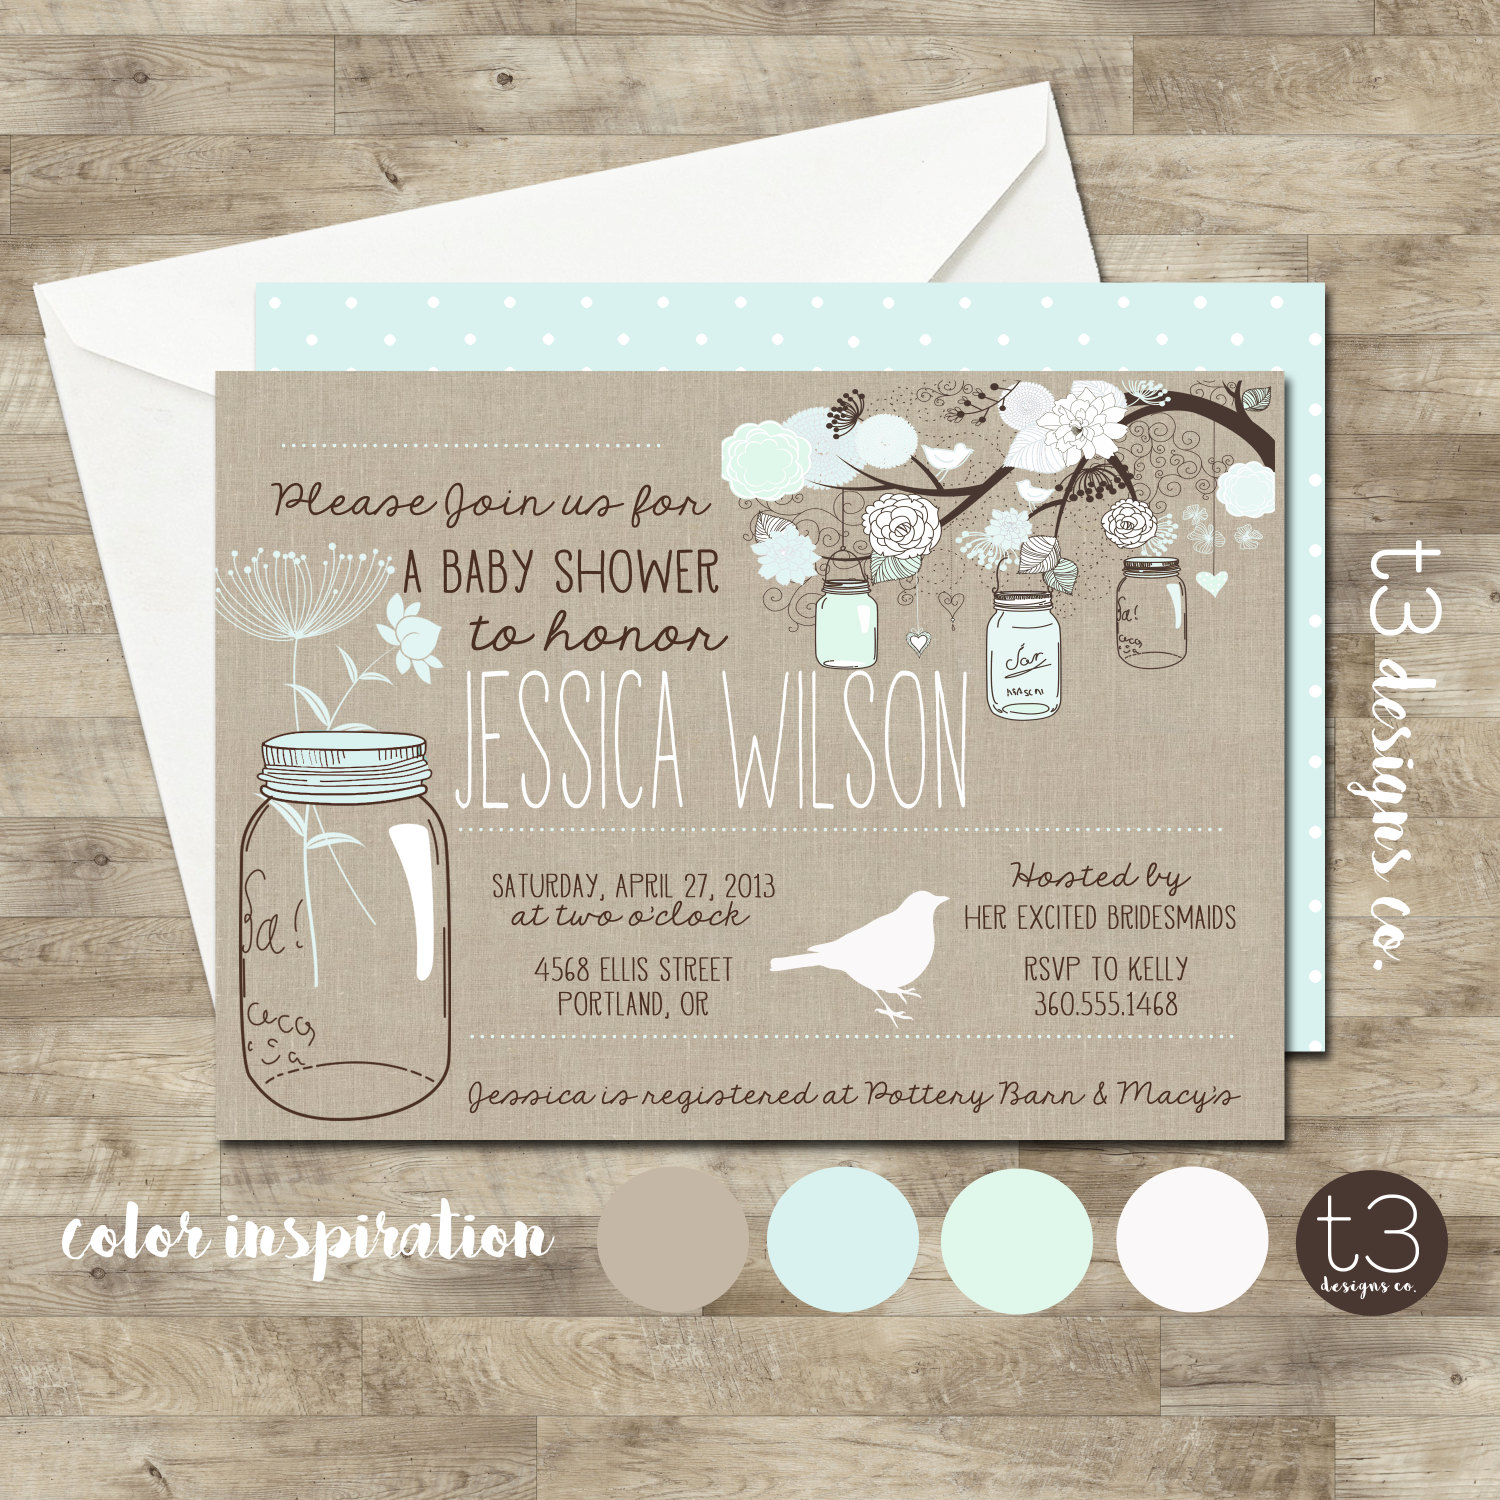 Gender neutral baby shower invitation baby shower invite mason jar gender neutral baby shower invitation baby shower invite mason jar baby shower mason jar flowers burlap baby mint front and back filmwisefo